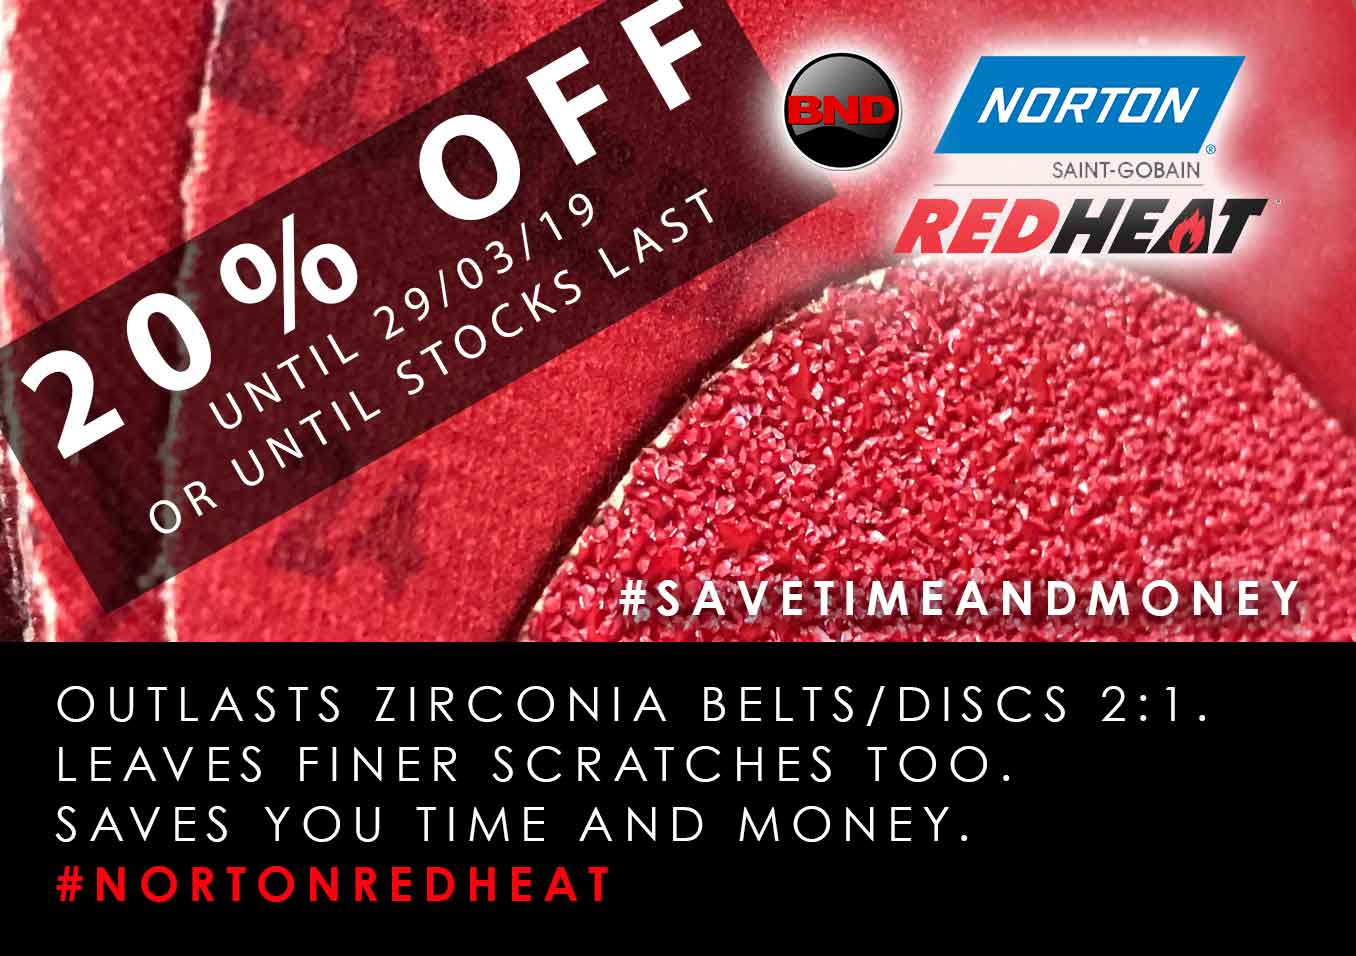 Norton Red Heat SALE